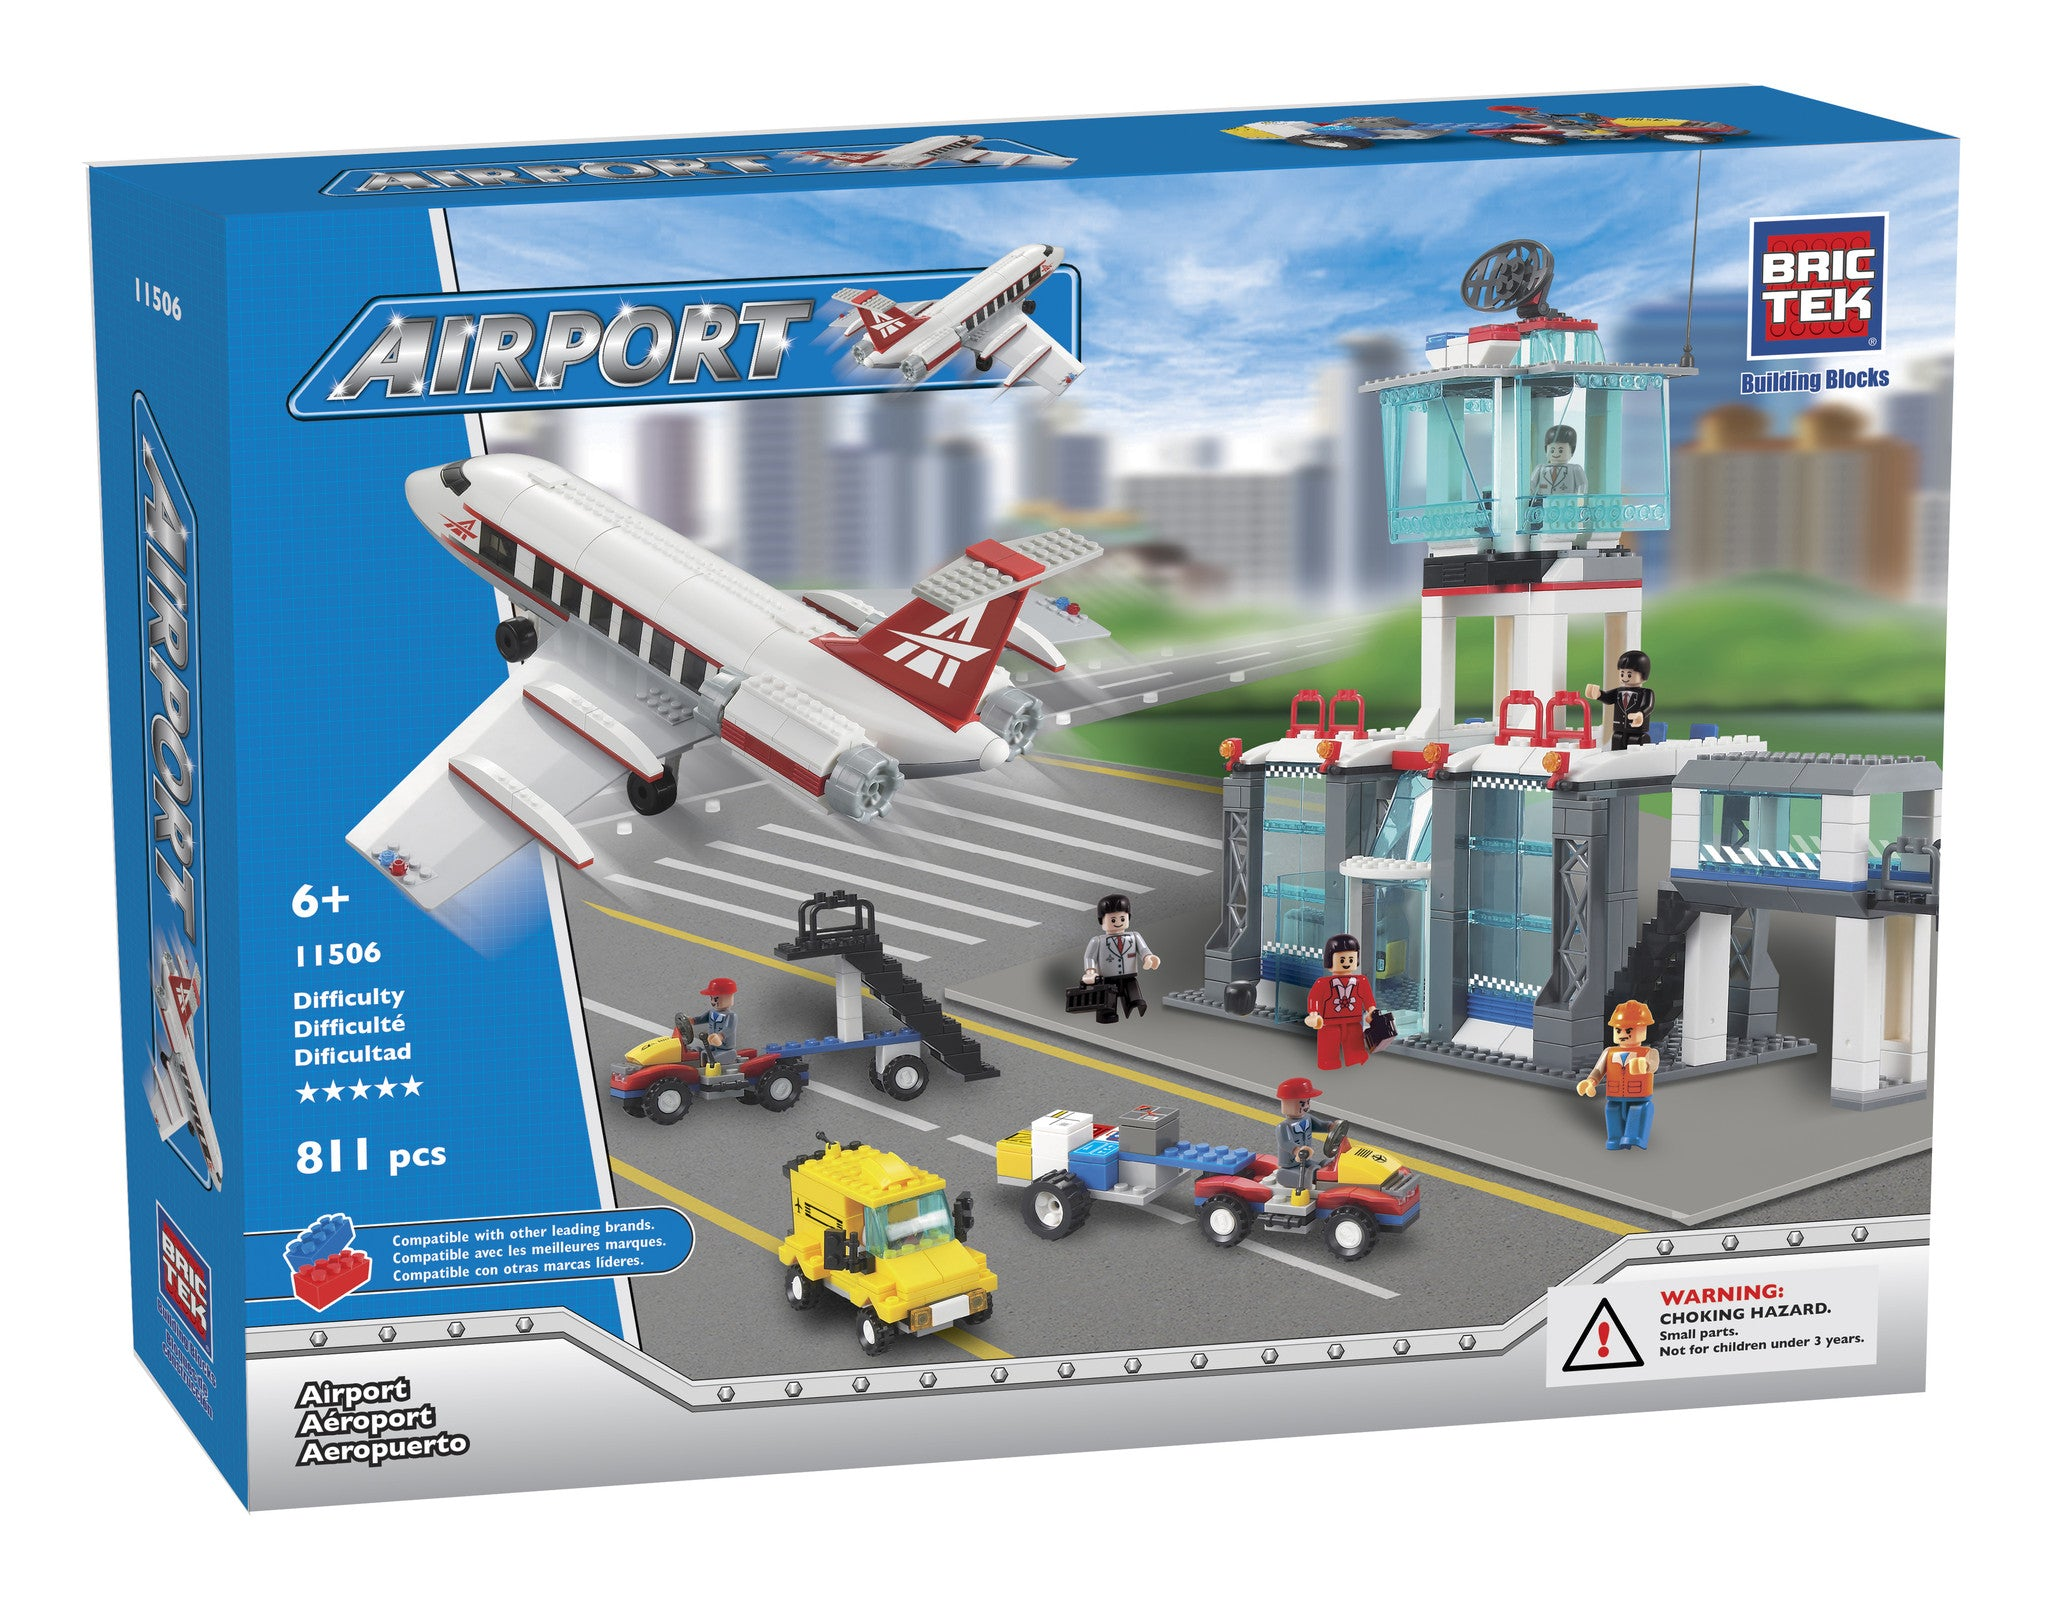 Brictek Building Blocks - Airport 11506